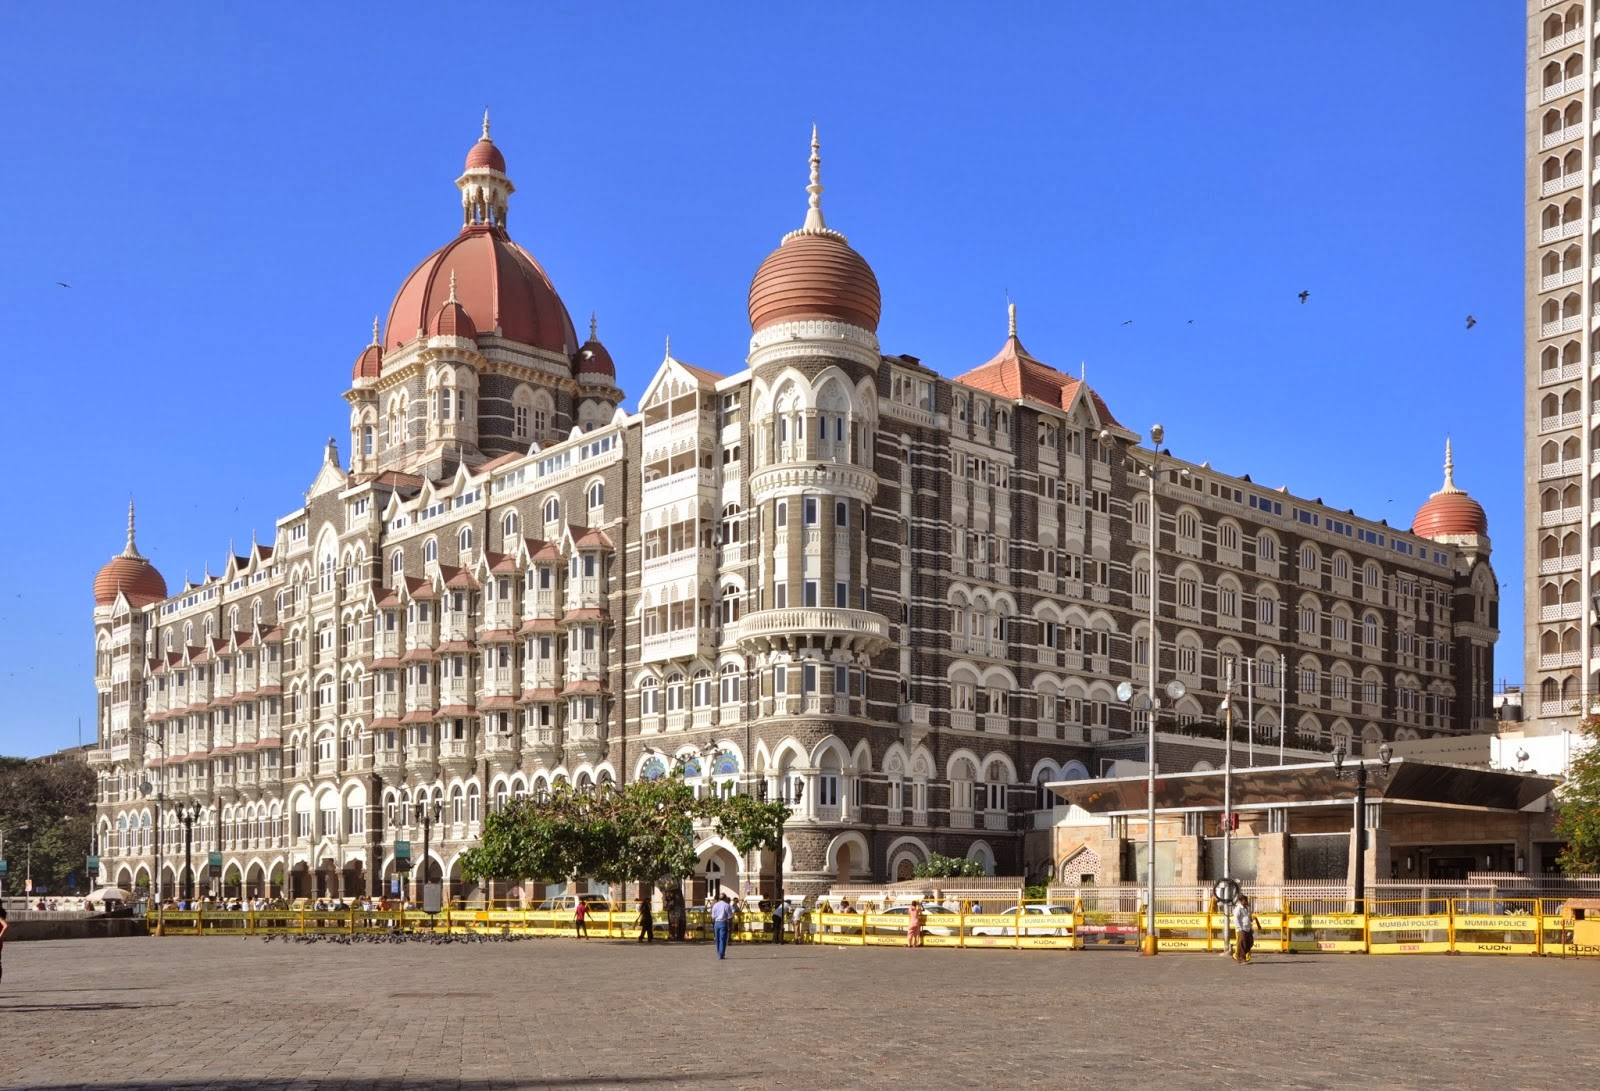 Hd wallpaper taj mahal - The Taj Mahal Hotel Mumbai Hd Wallpapers